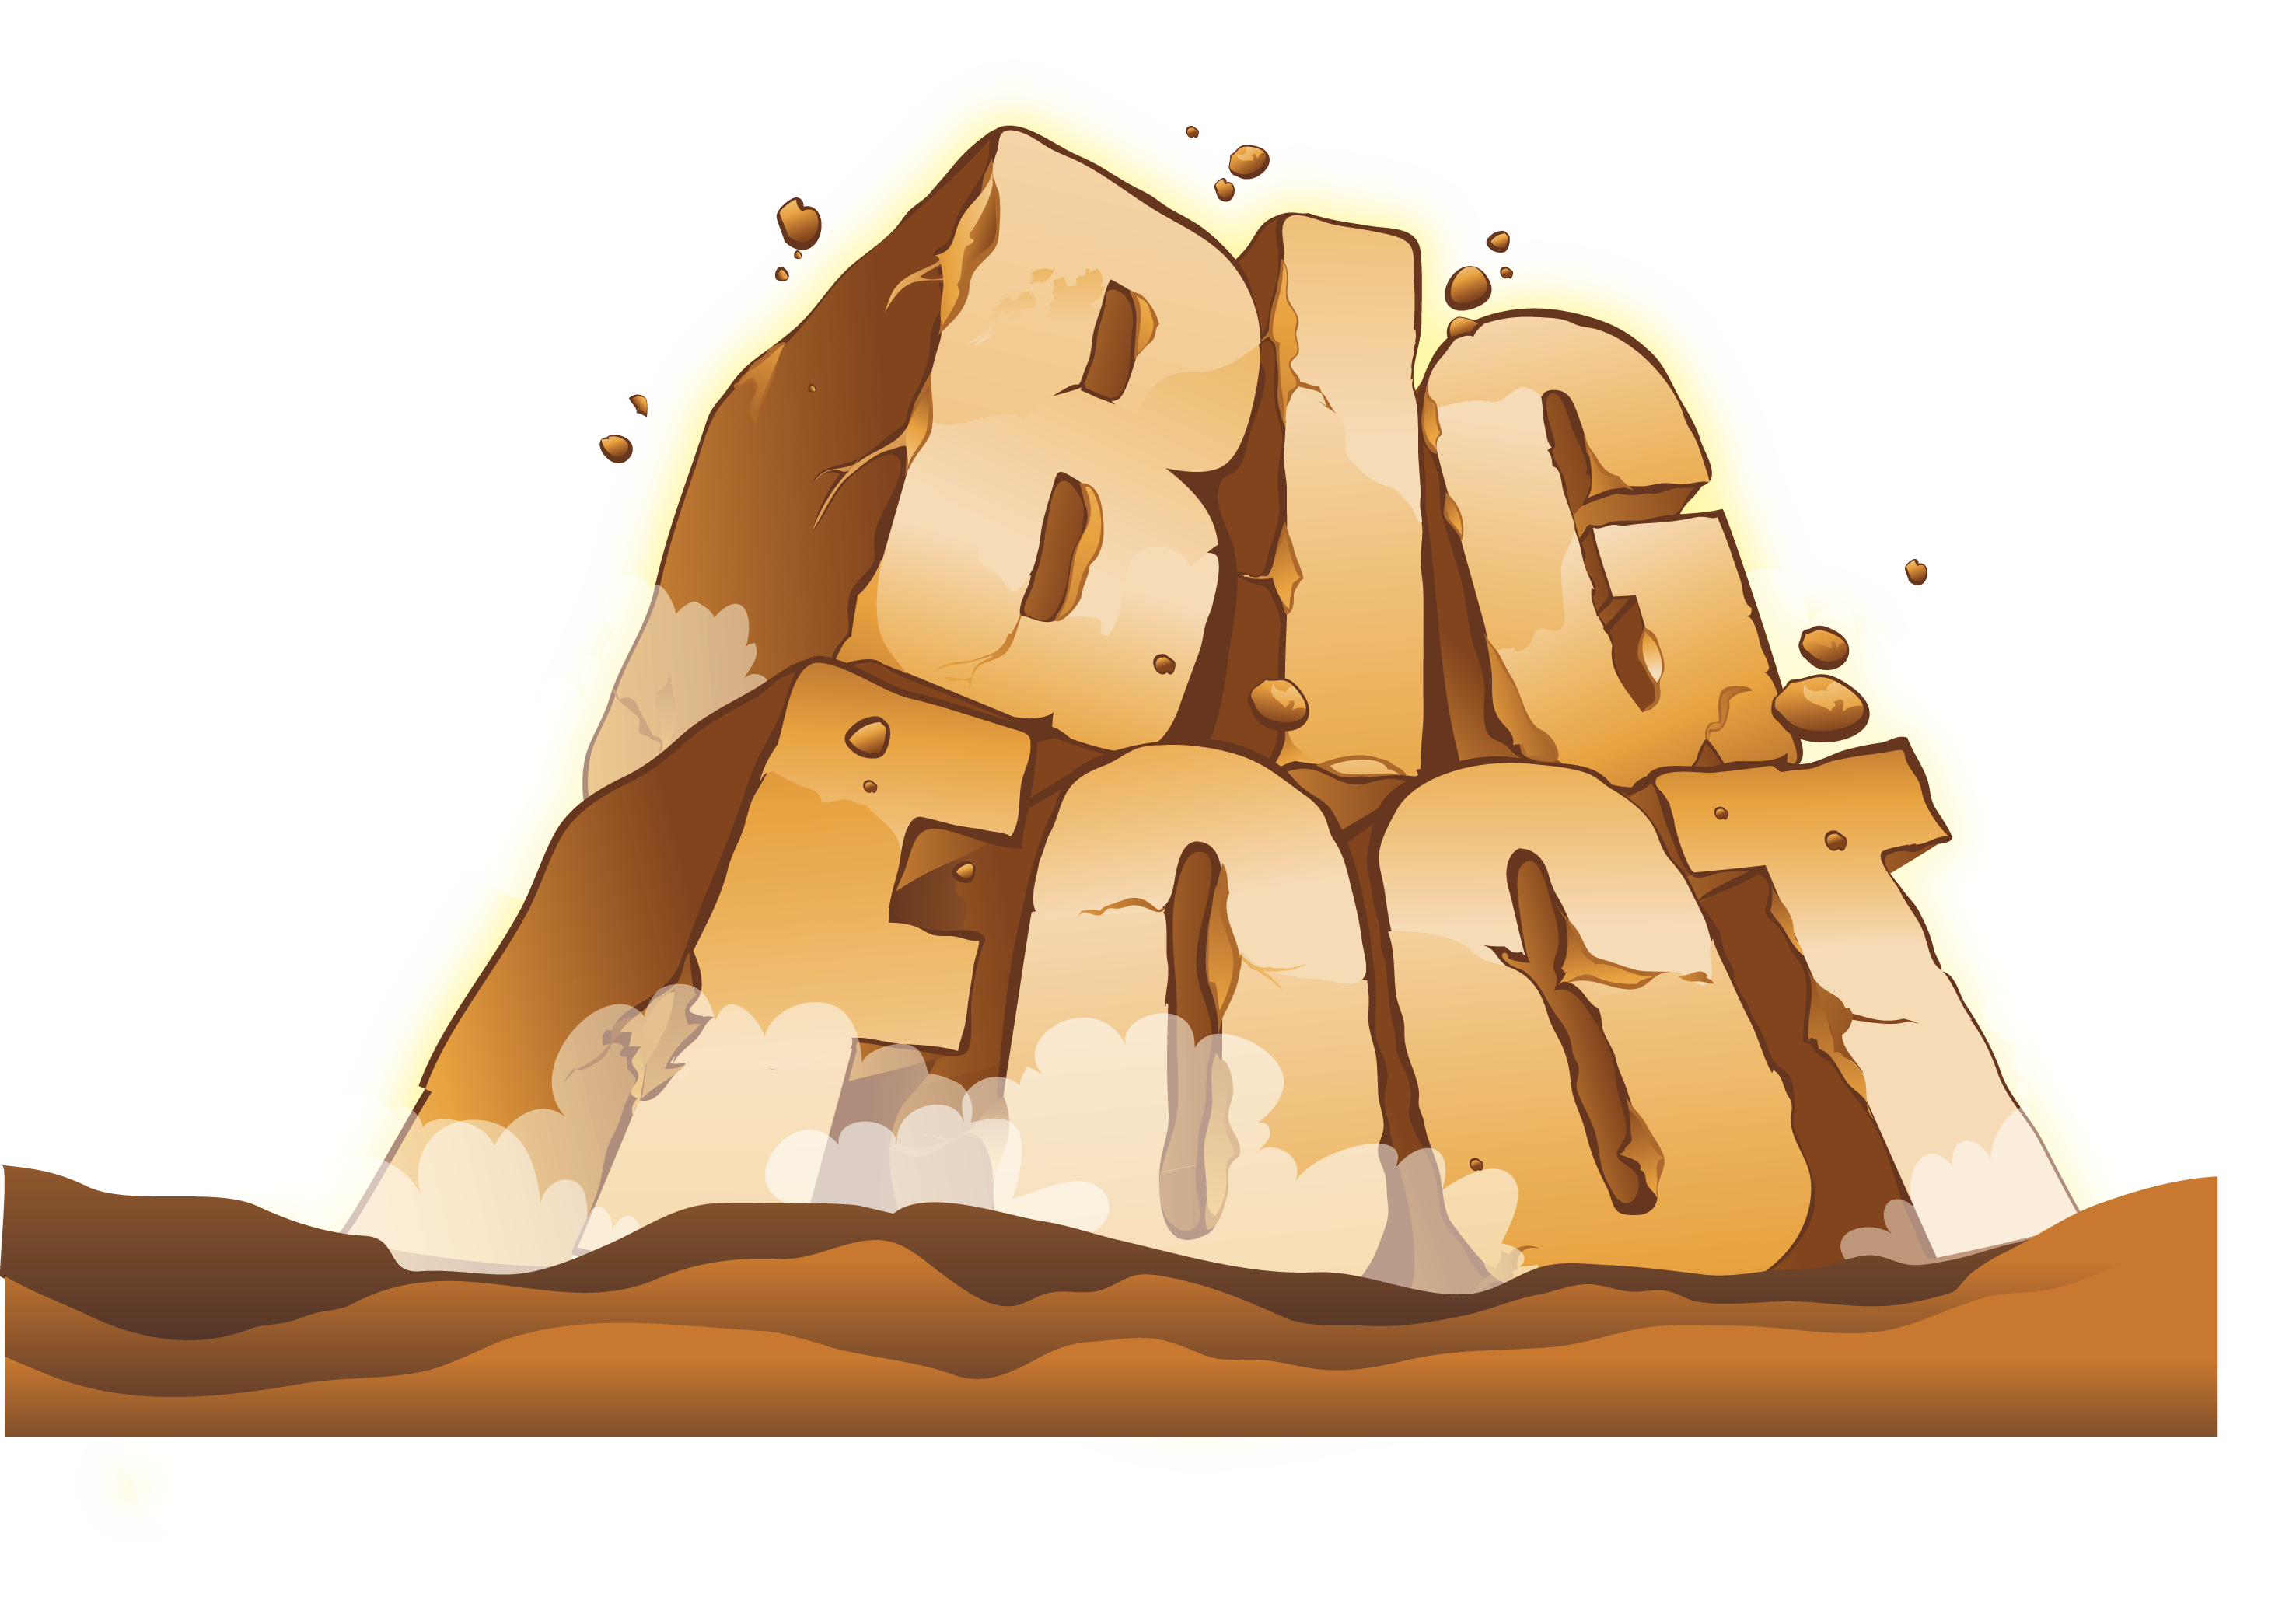 Feet clipart bigfoot. Online slot title with